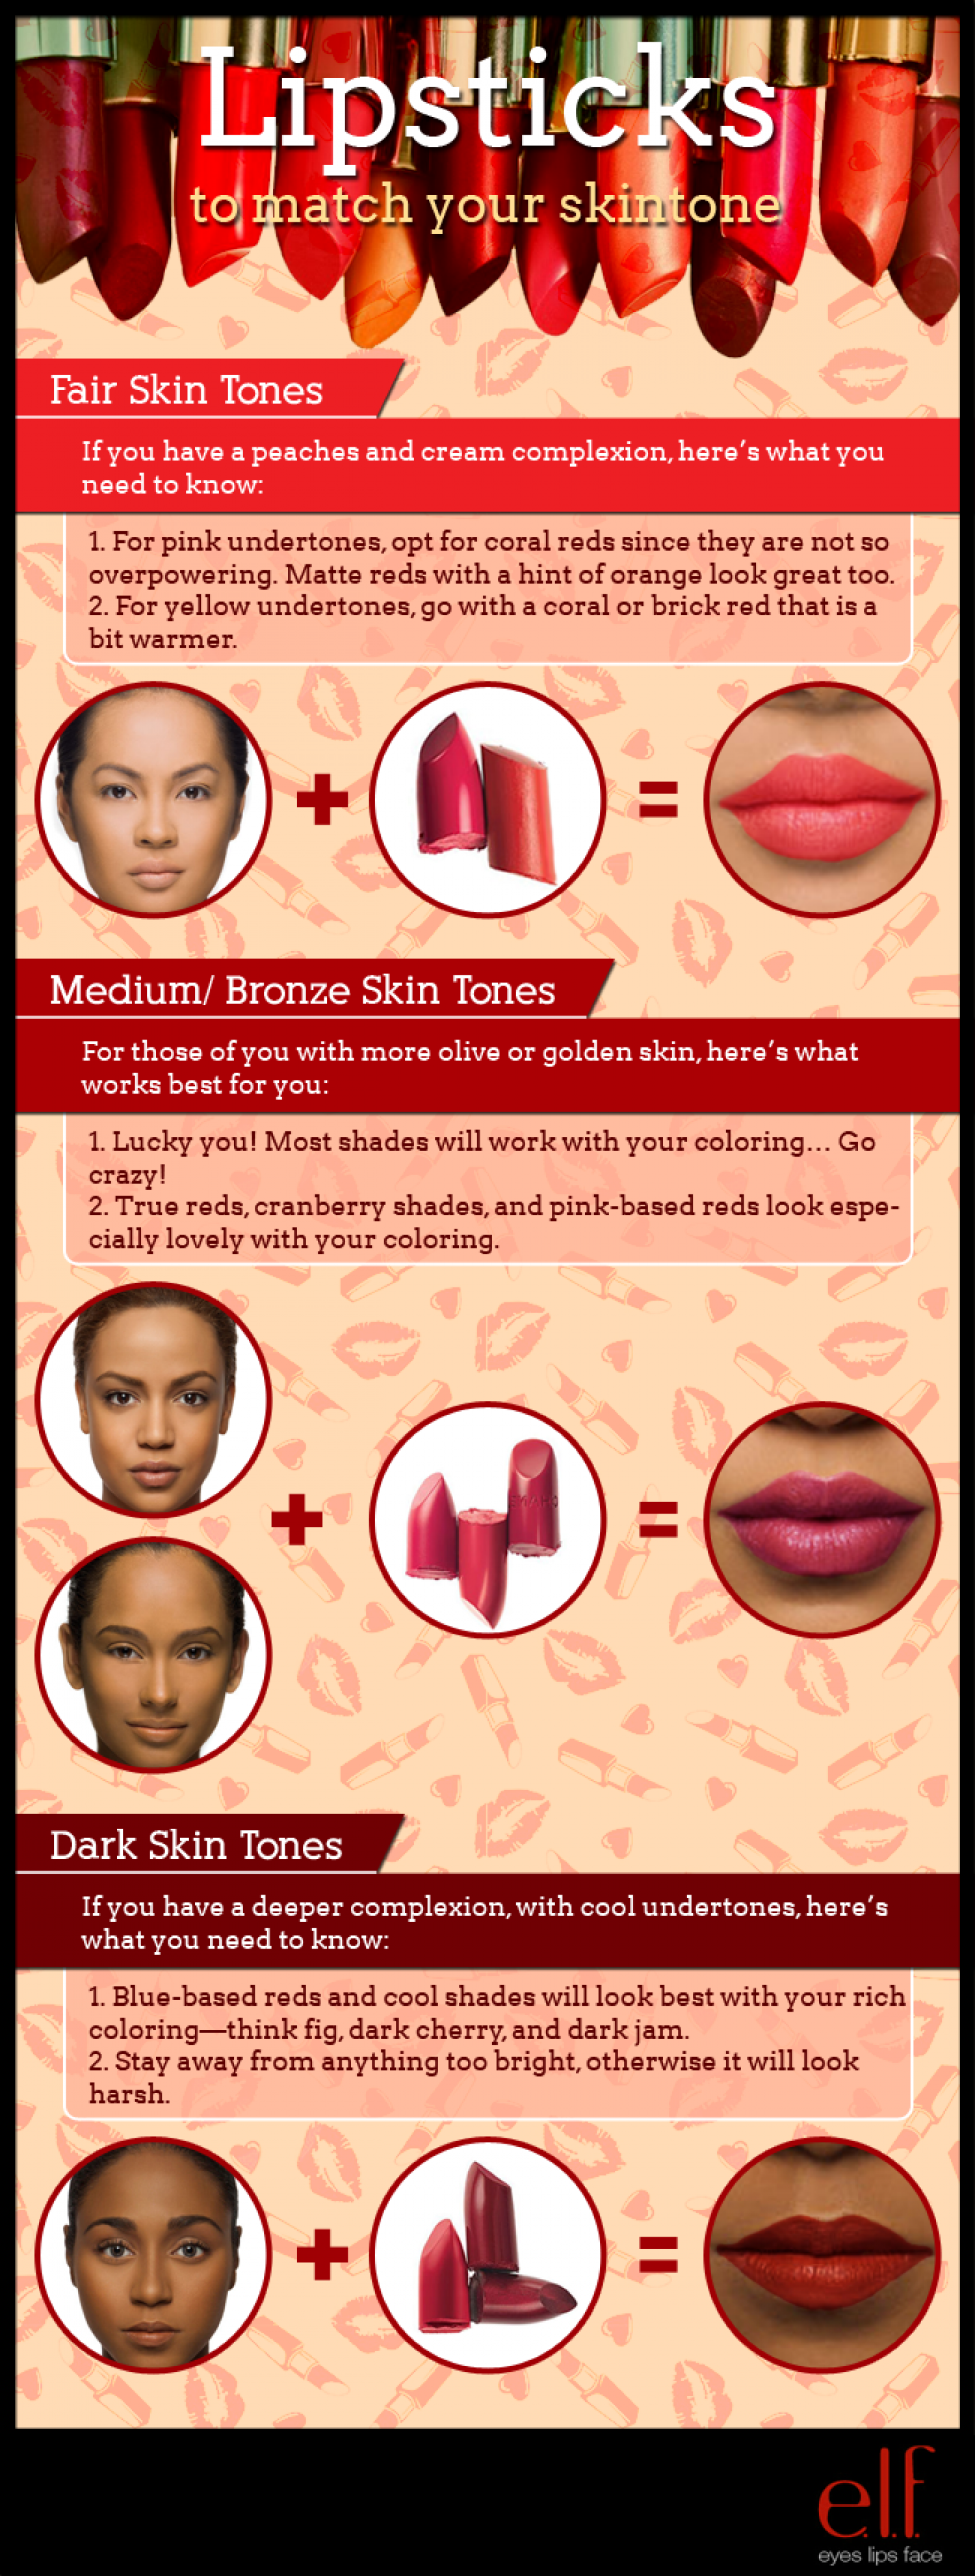 Lipsticks to match your skin tone Infographic